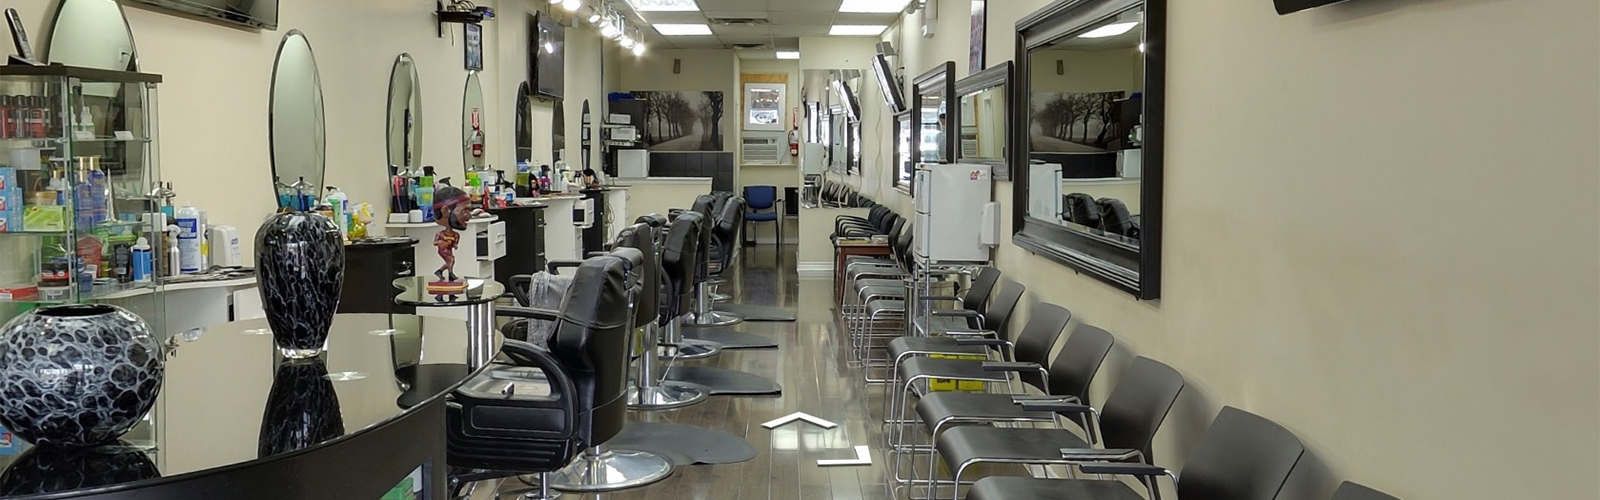 Barber shop Mississauga Family Barbers